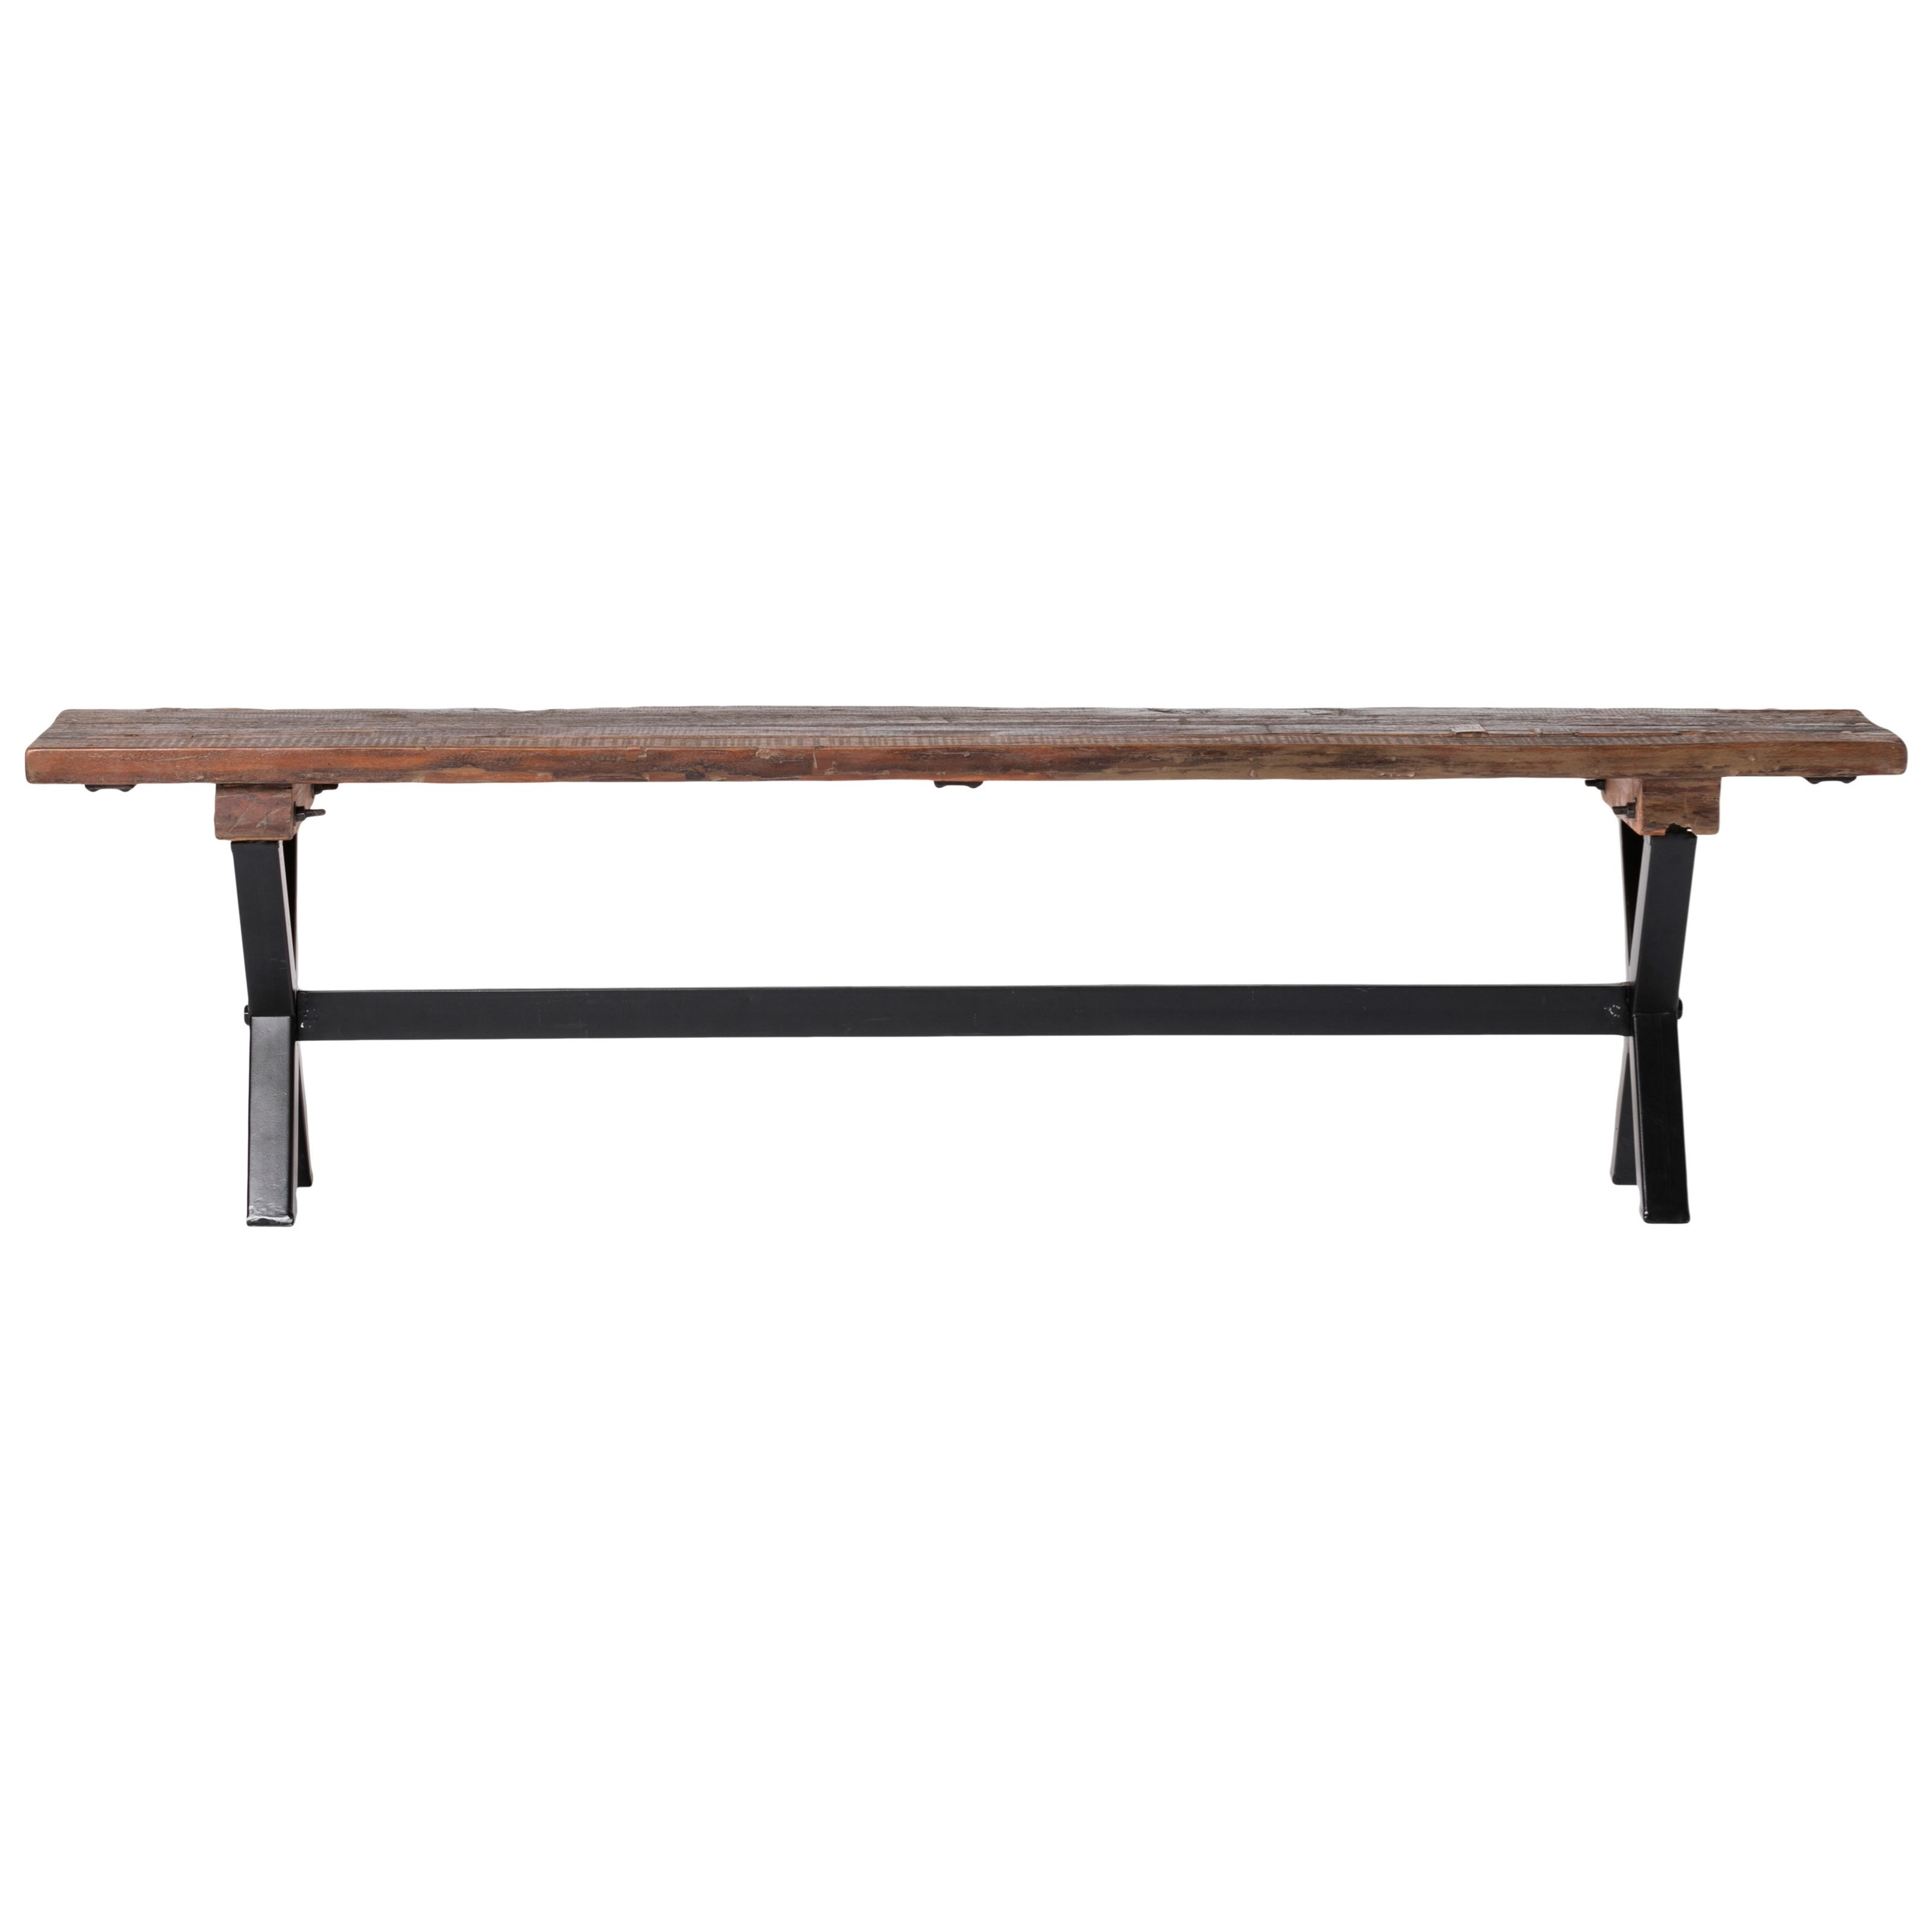 Moe's Home Collection Ivan Bench - Item Number: BX-1002-24